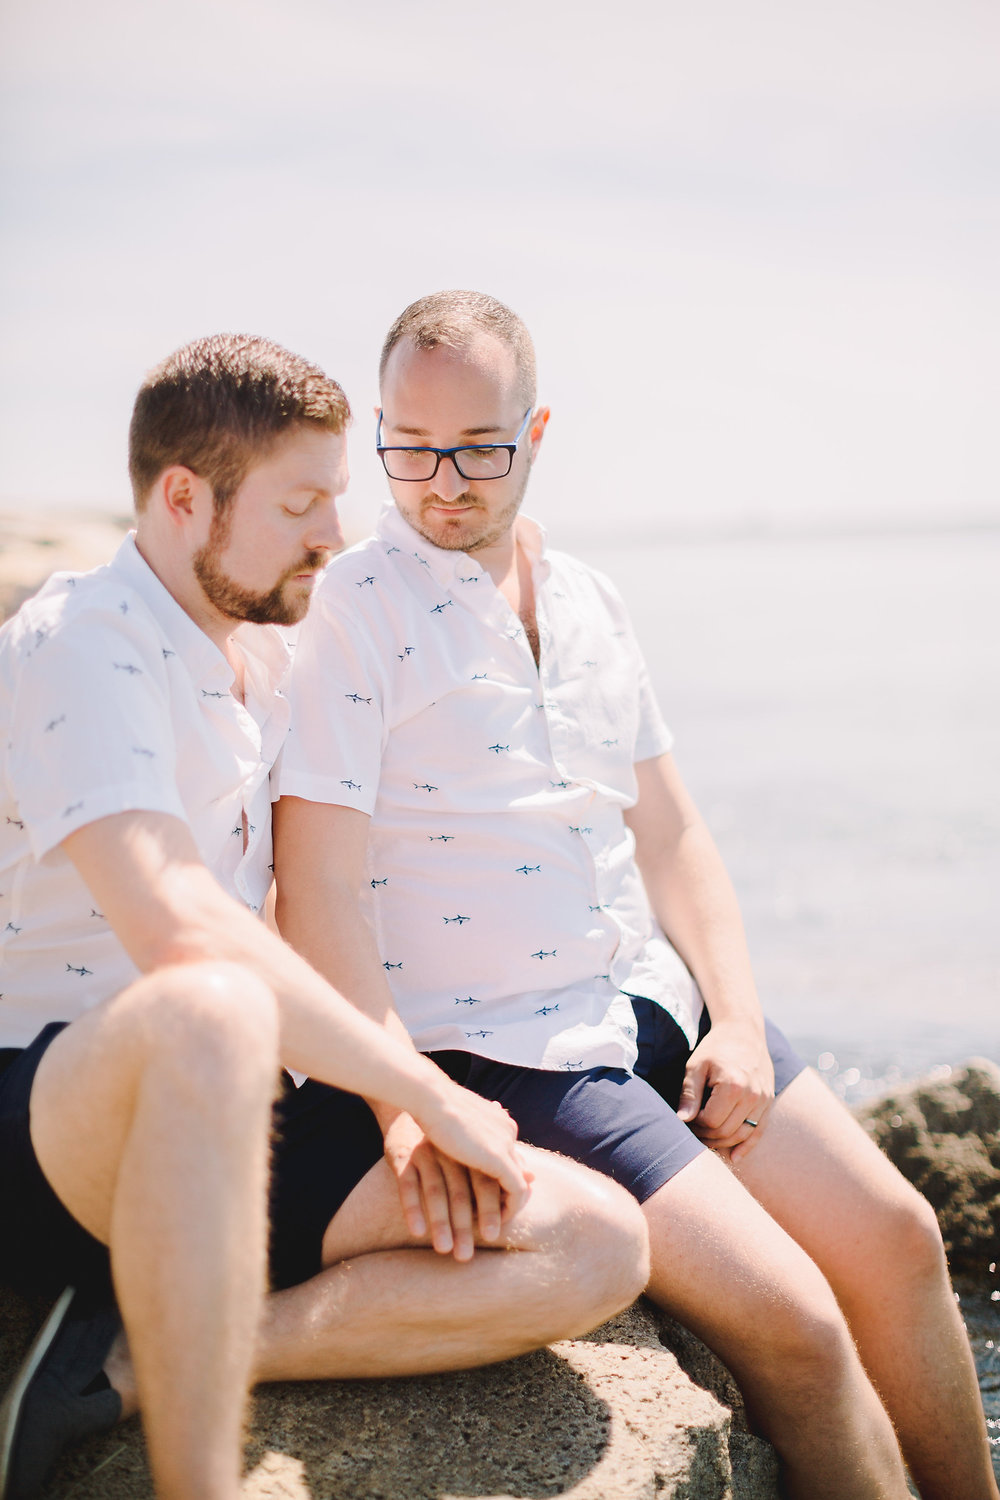 provincetown, ma elopement and wedding planning